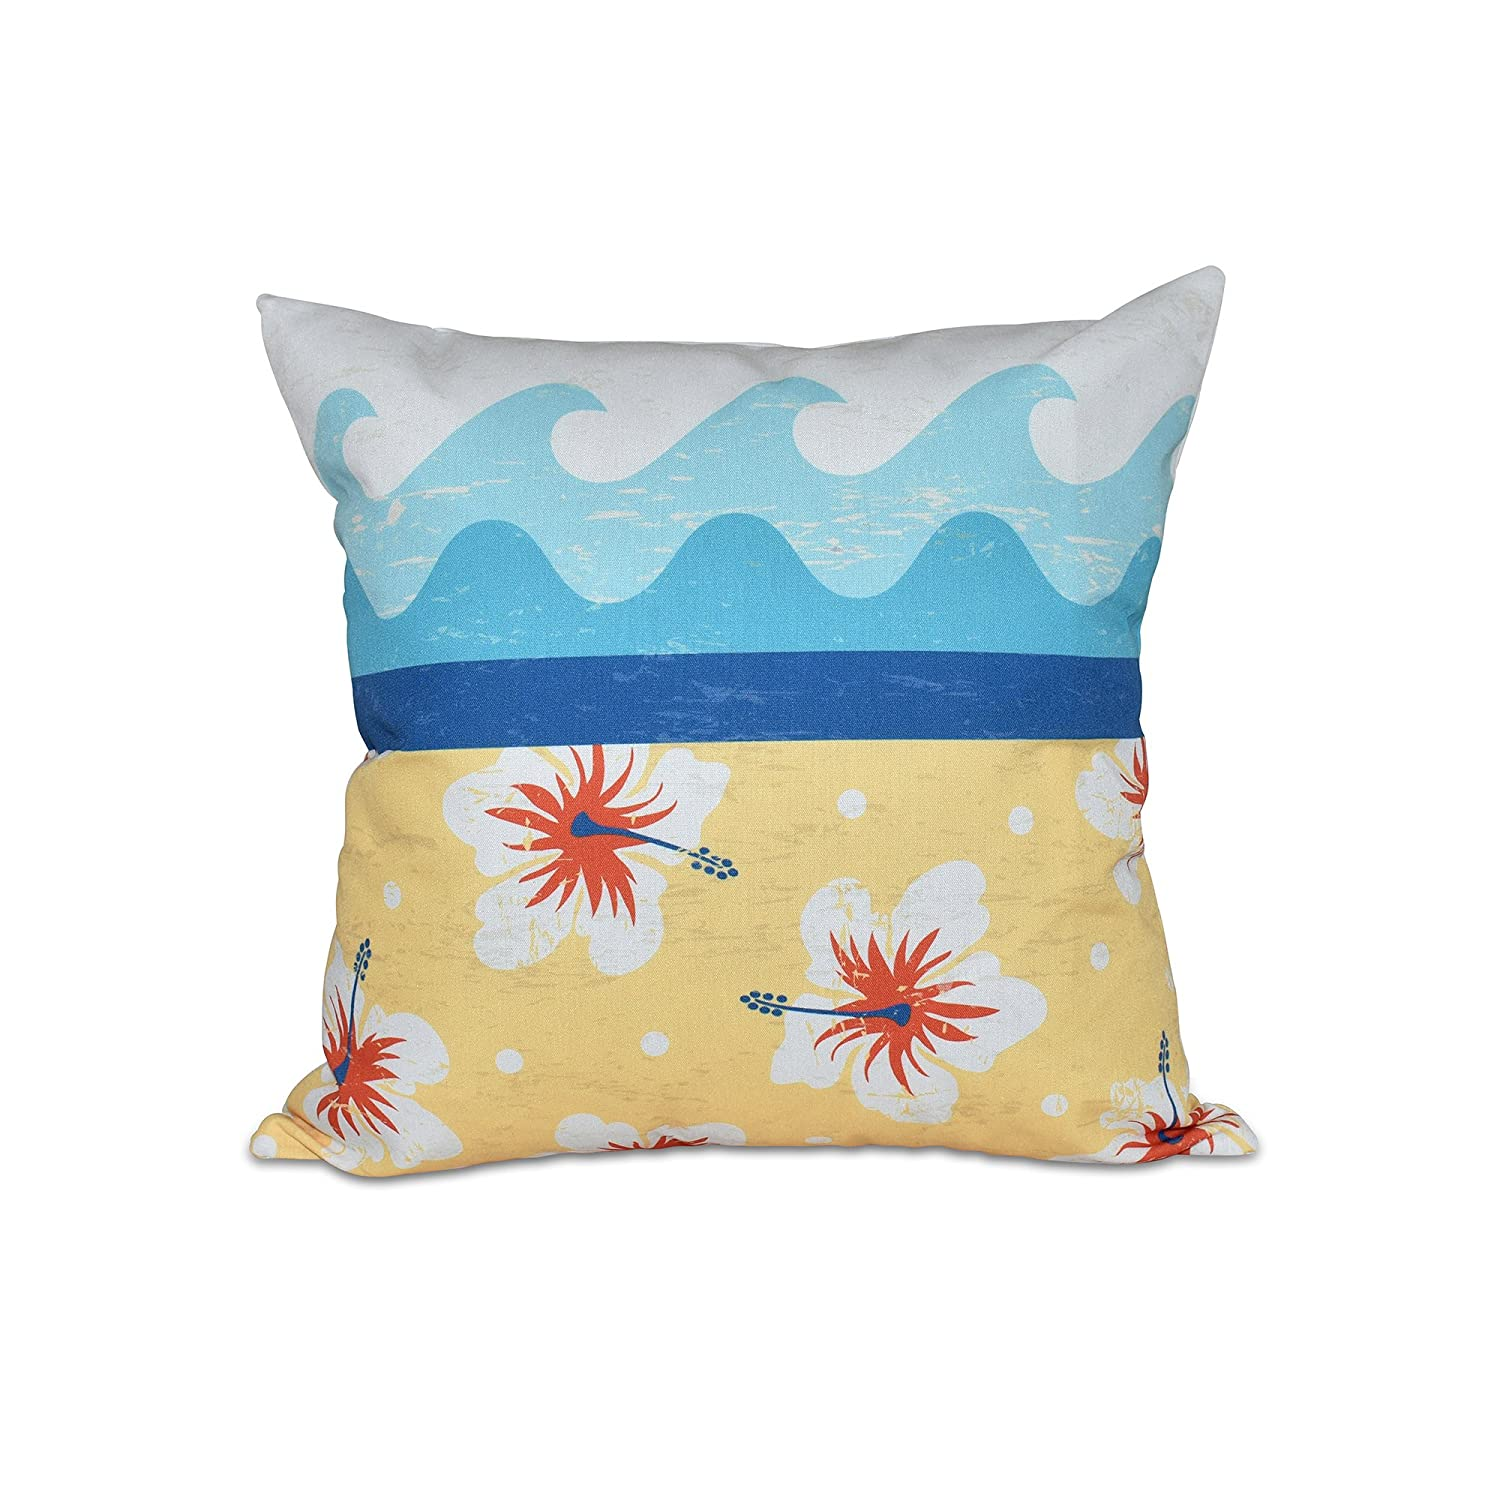 E by design Surf, Sand & Sea Floral Print Outdoor Pillow